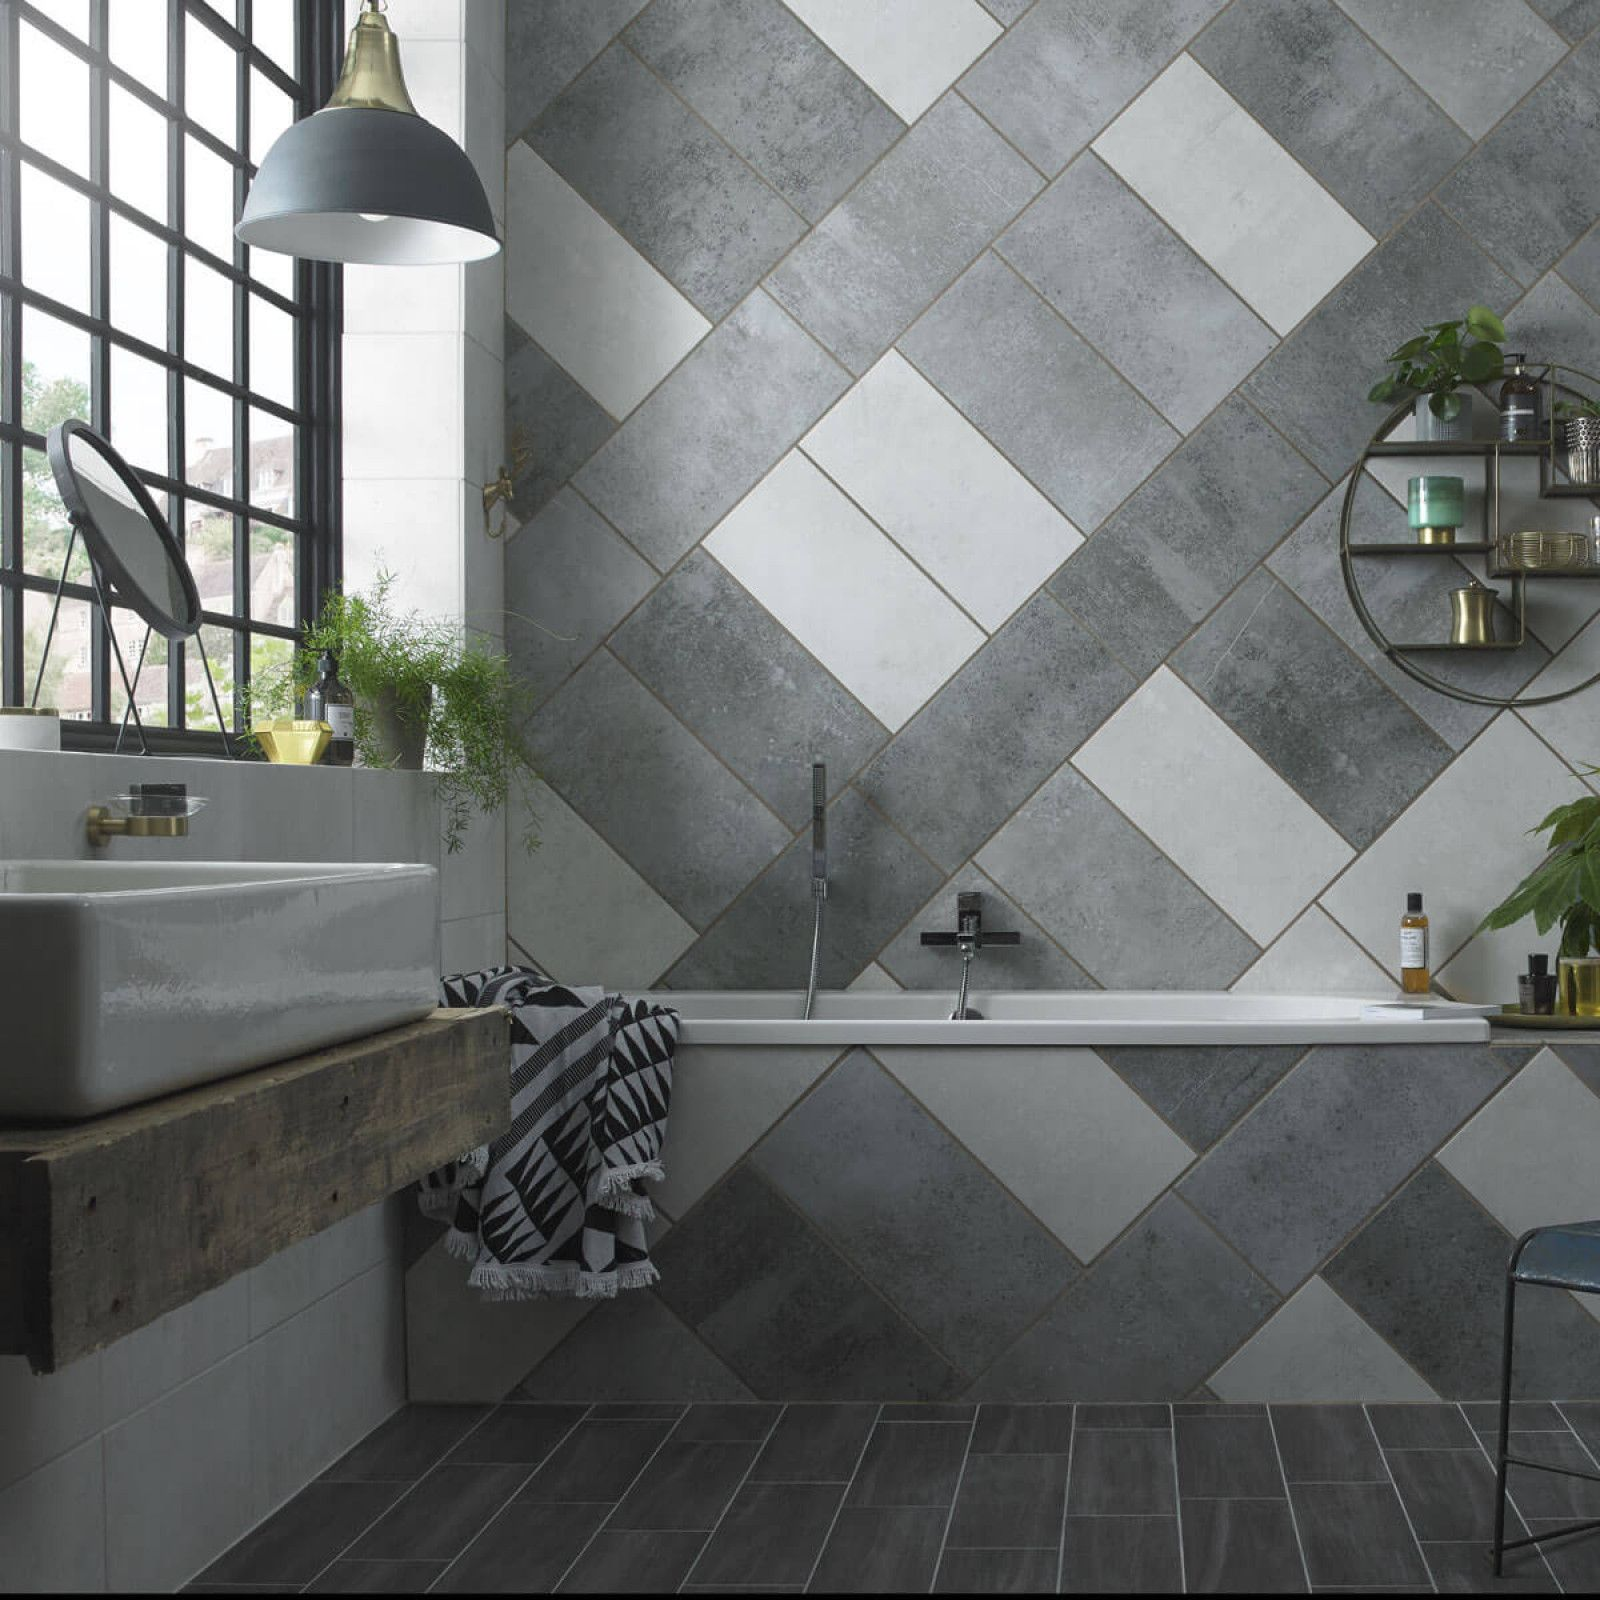 HD (With images) | Top bathroom design, Grey tiles, House ...